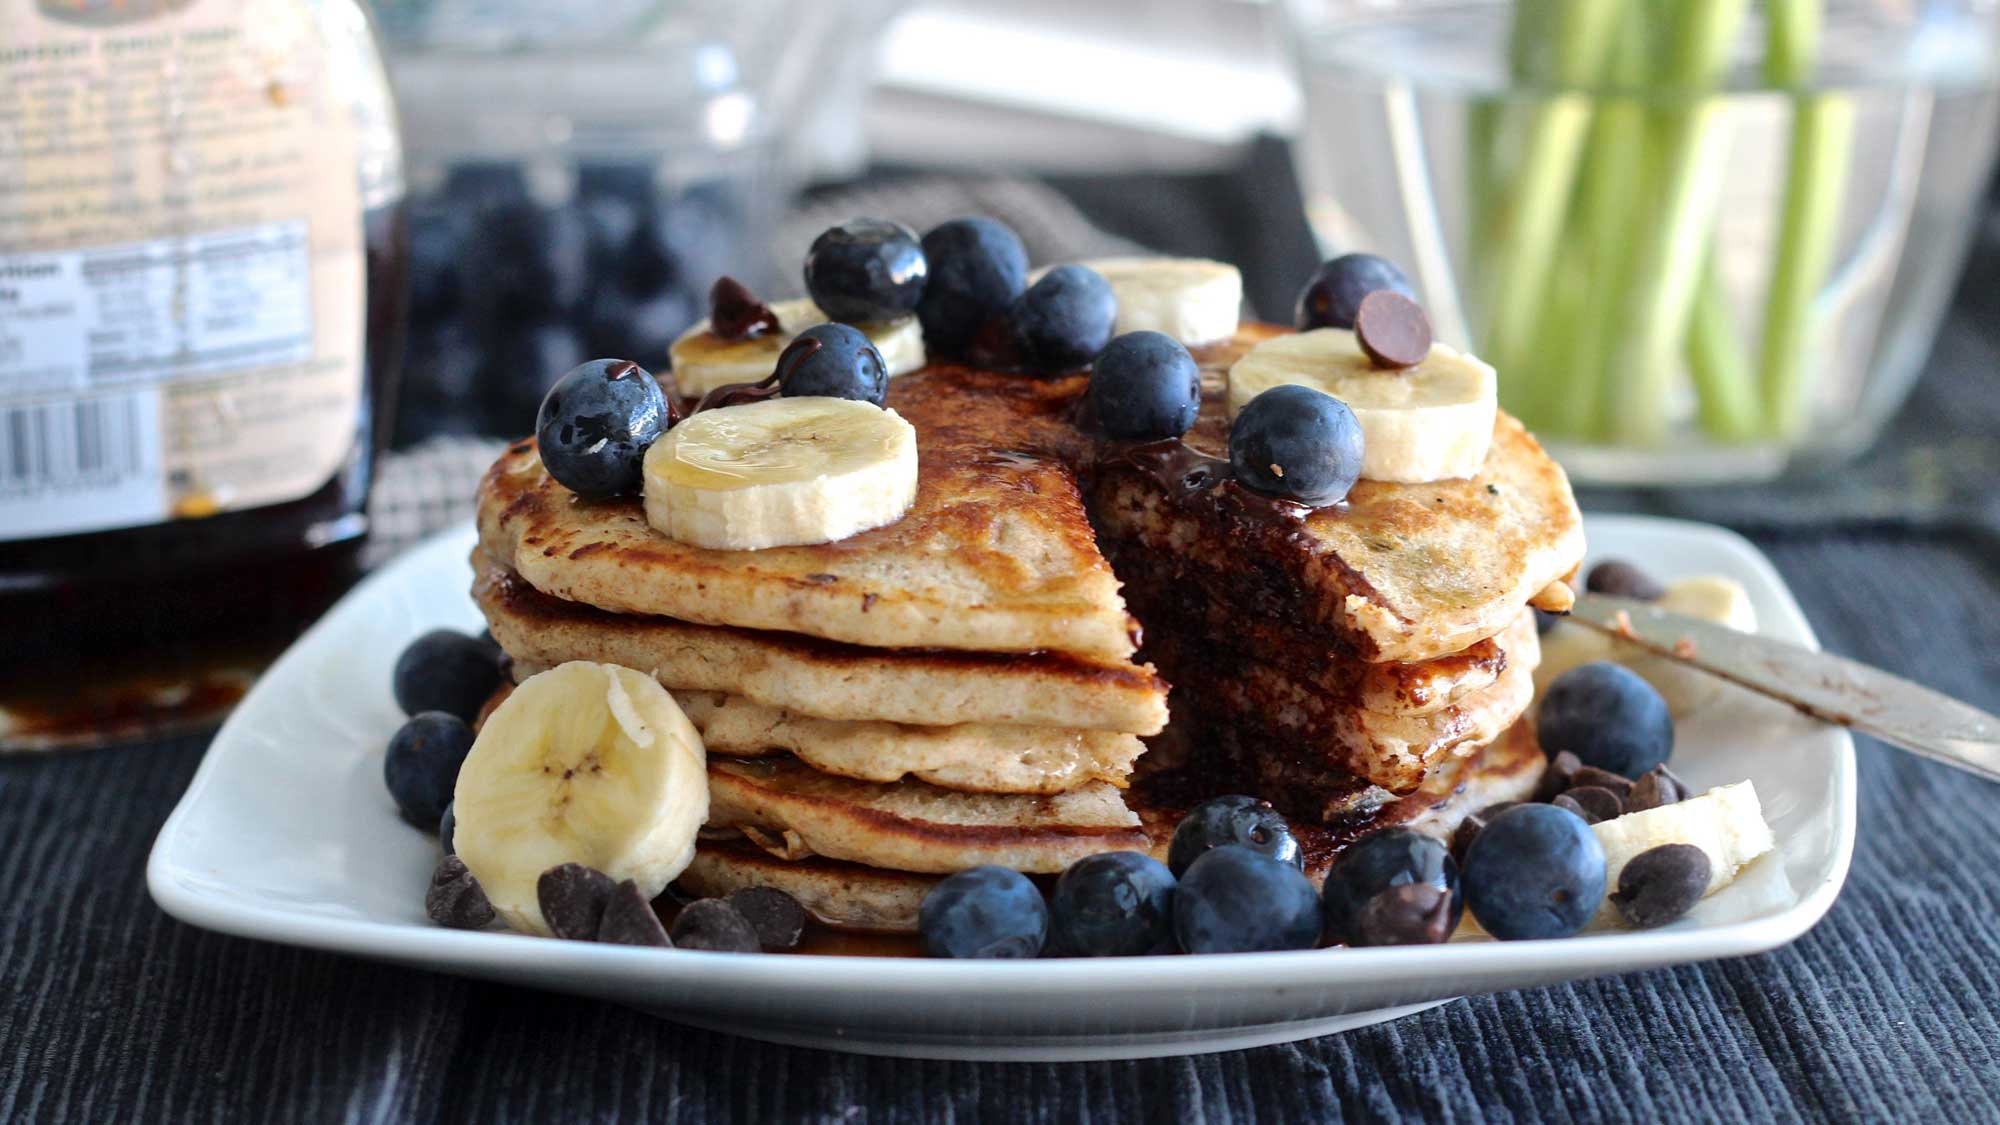 foods-high-in-carbohydrates Homemade-Banana-Chocolate-Chip-Pancakes-with-Fresh-Fruit-521150-edited